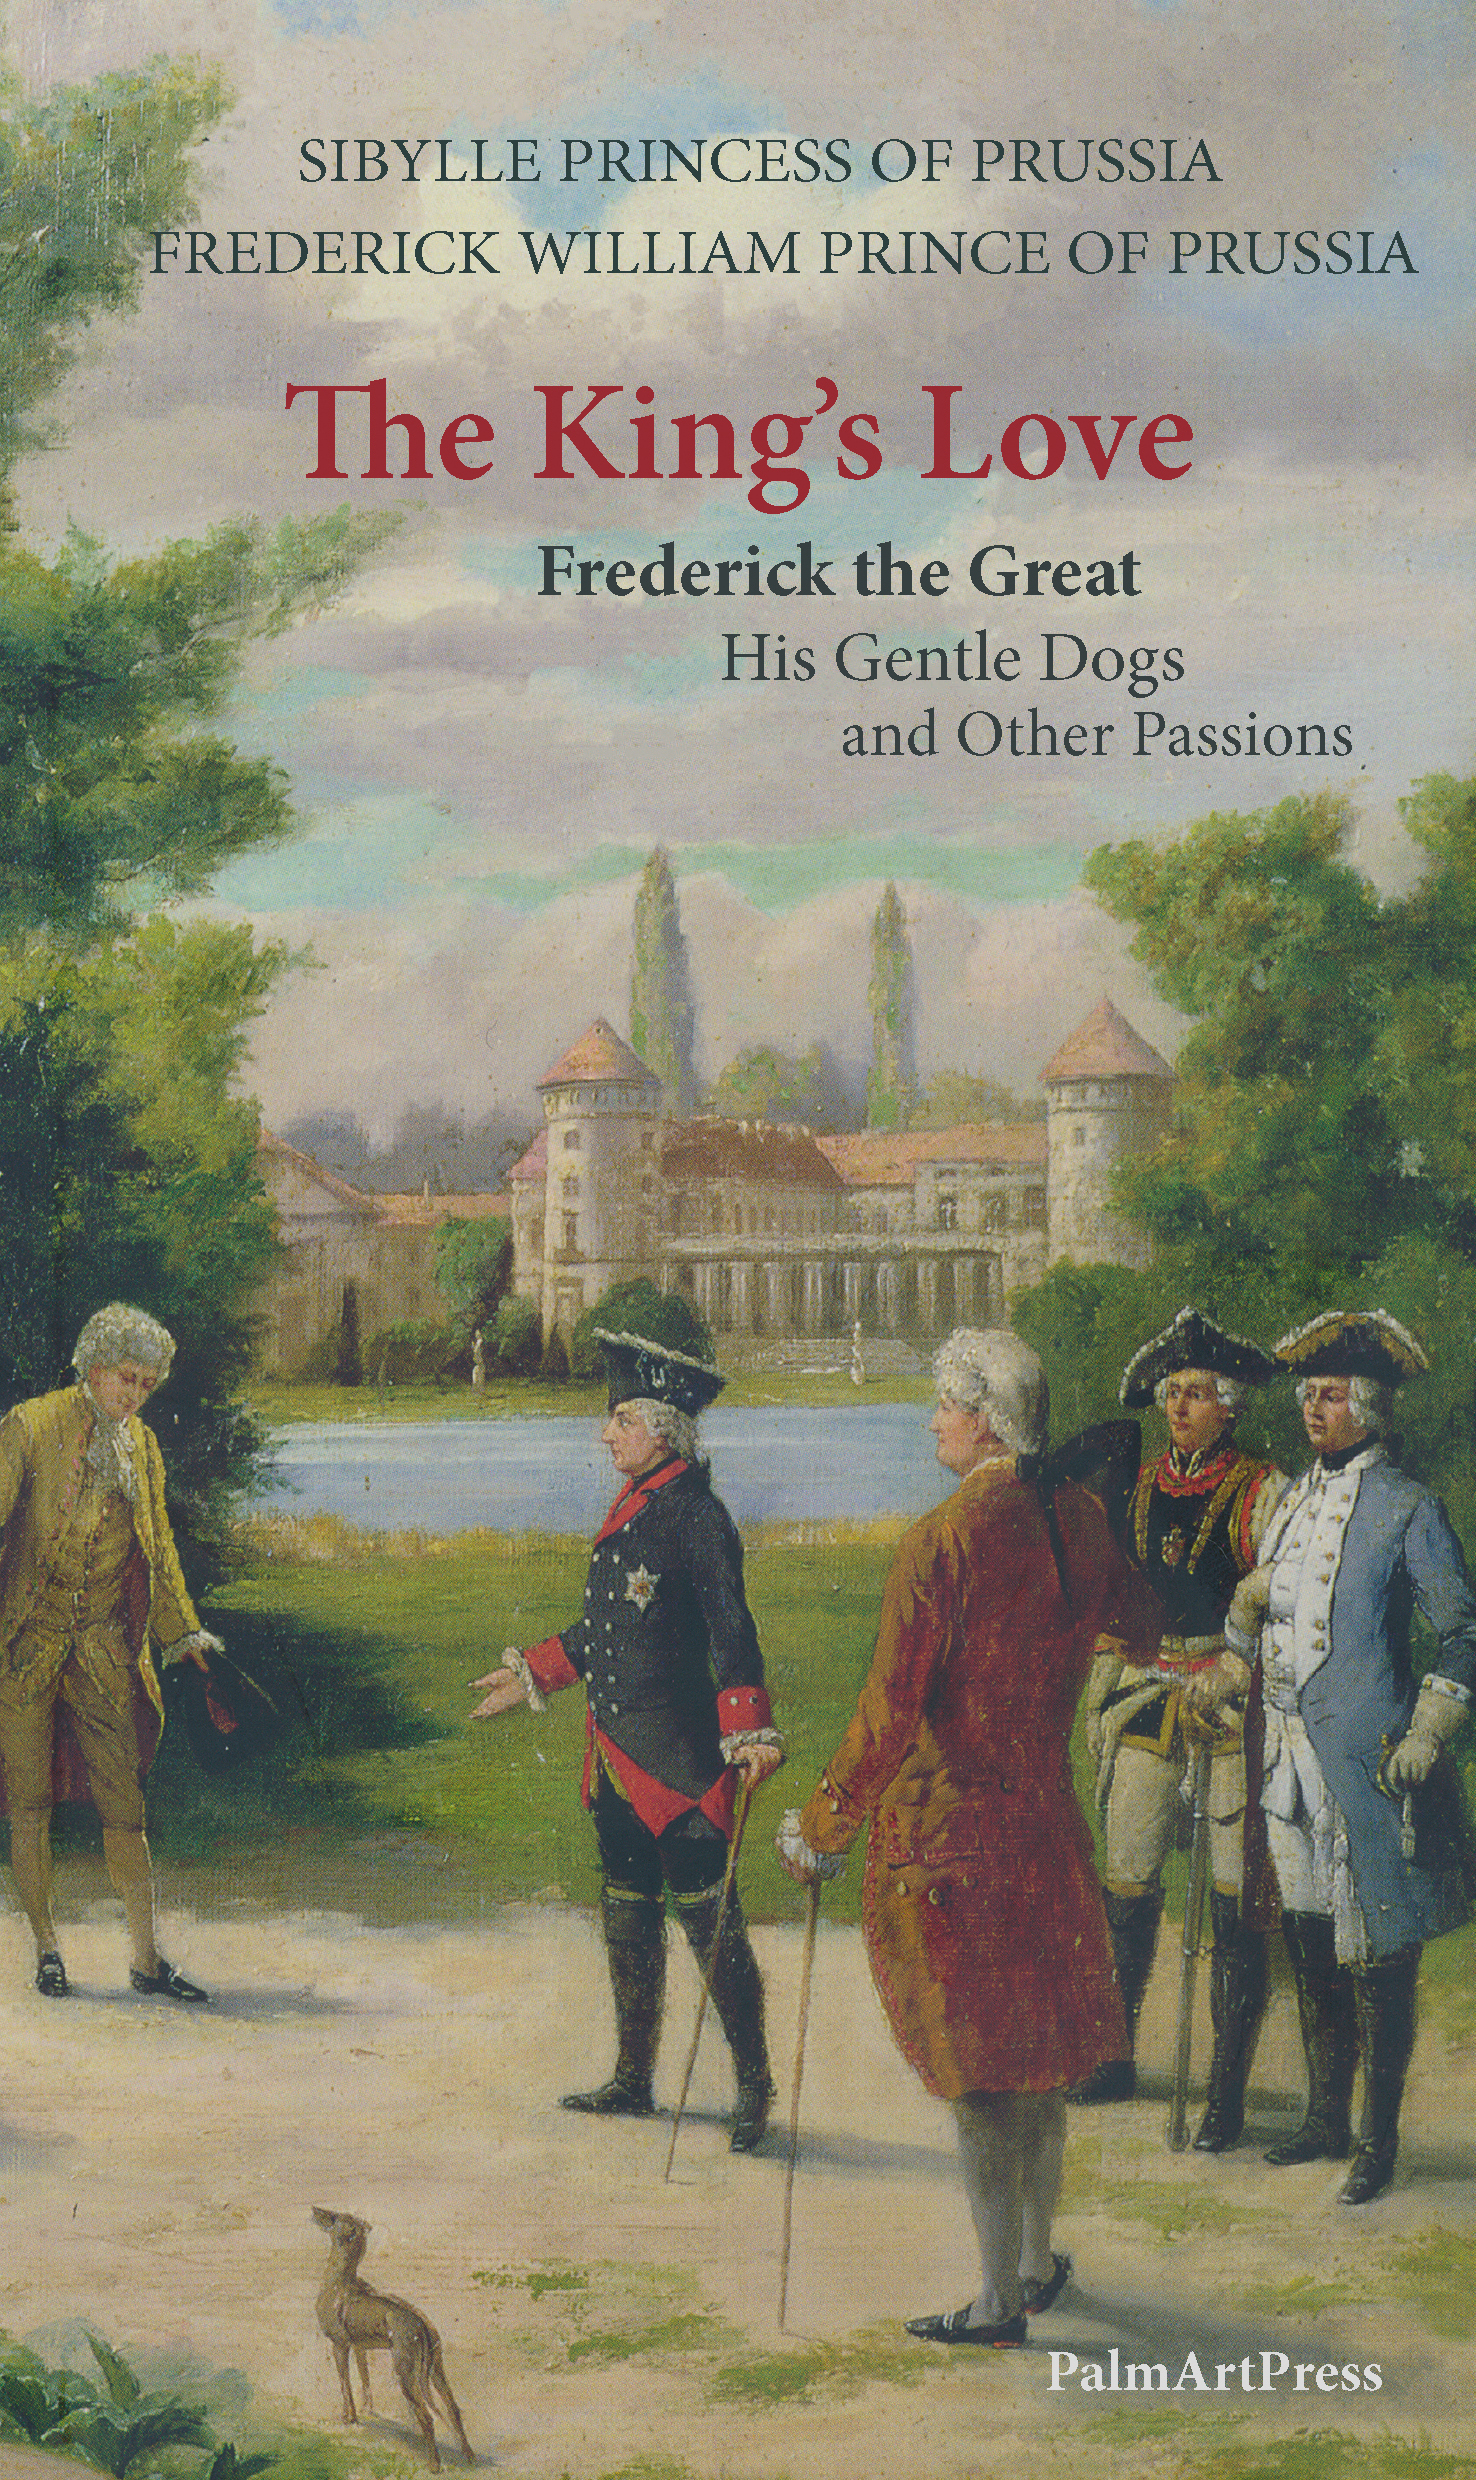 The King's Love: Frederick the Great, His Gentle Dogs and Other Passions